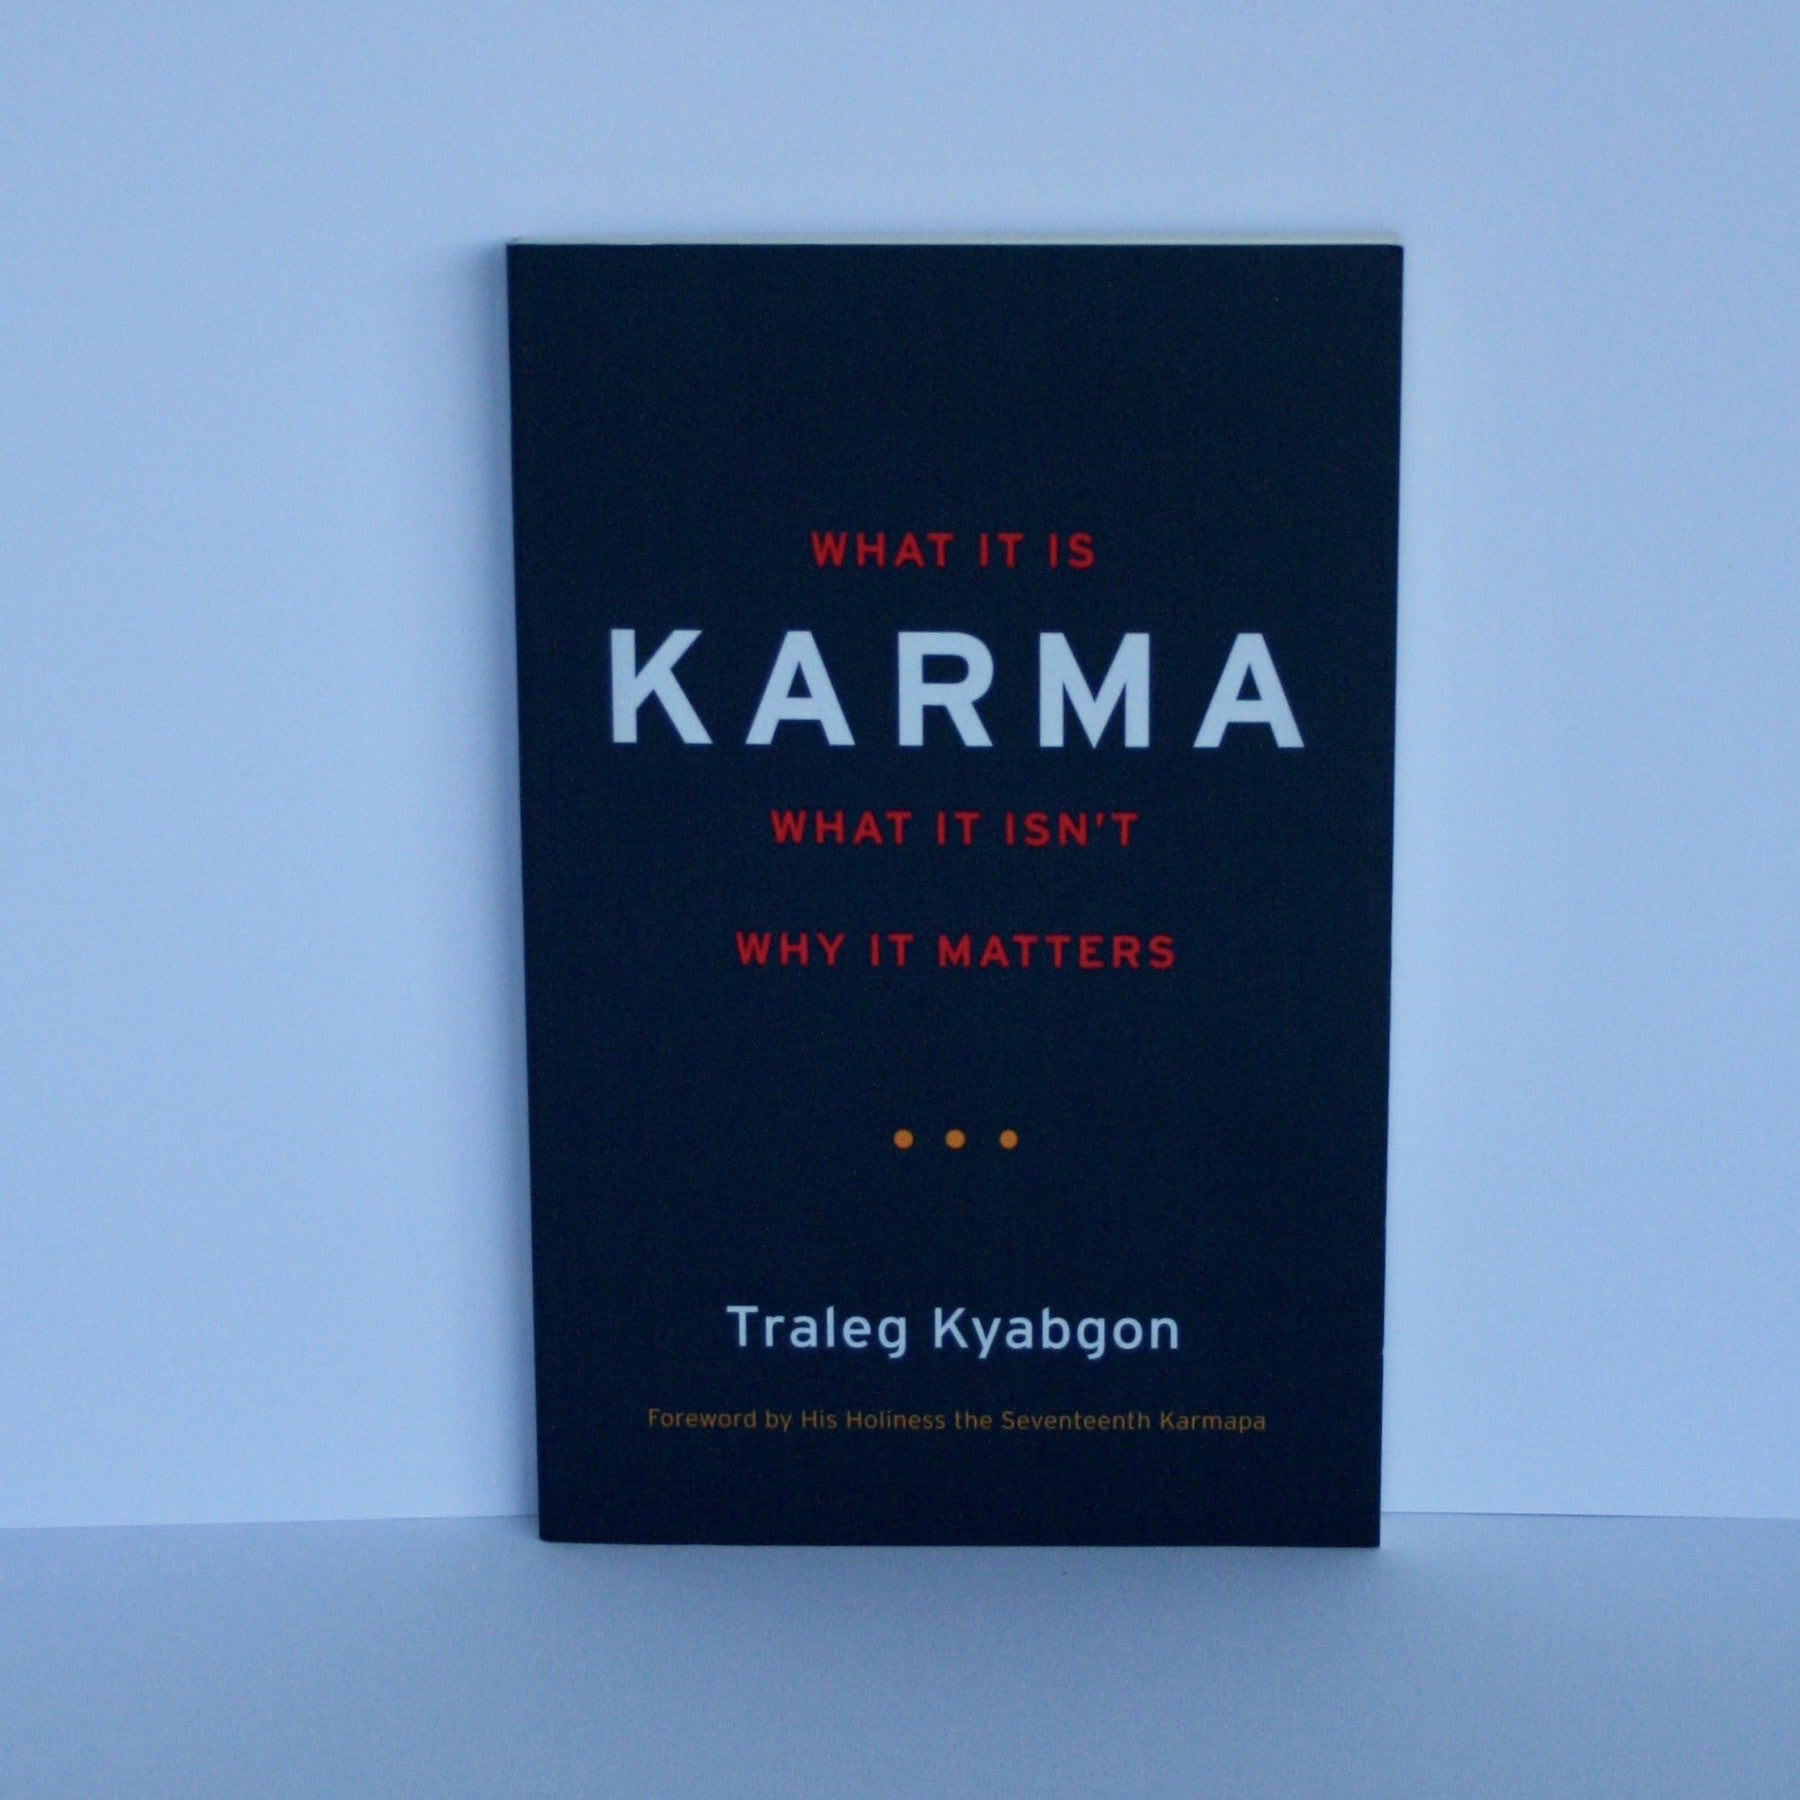 Karma - What It Is, What It Isn't, Why It Matters by Traleg Kyabgon